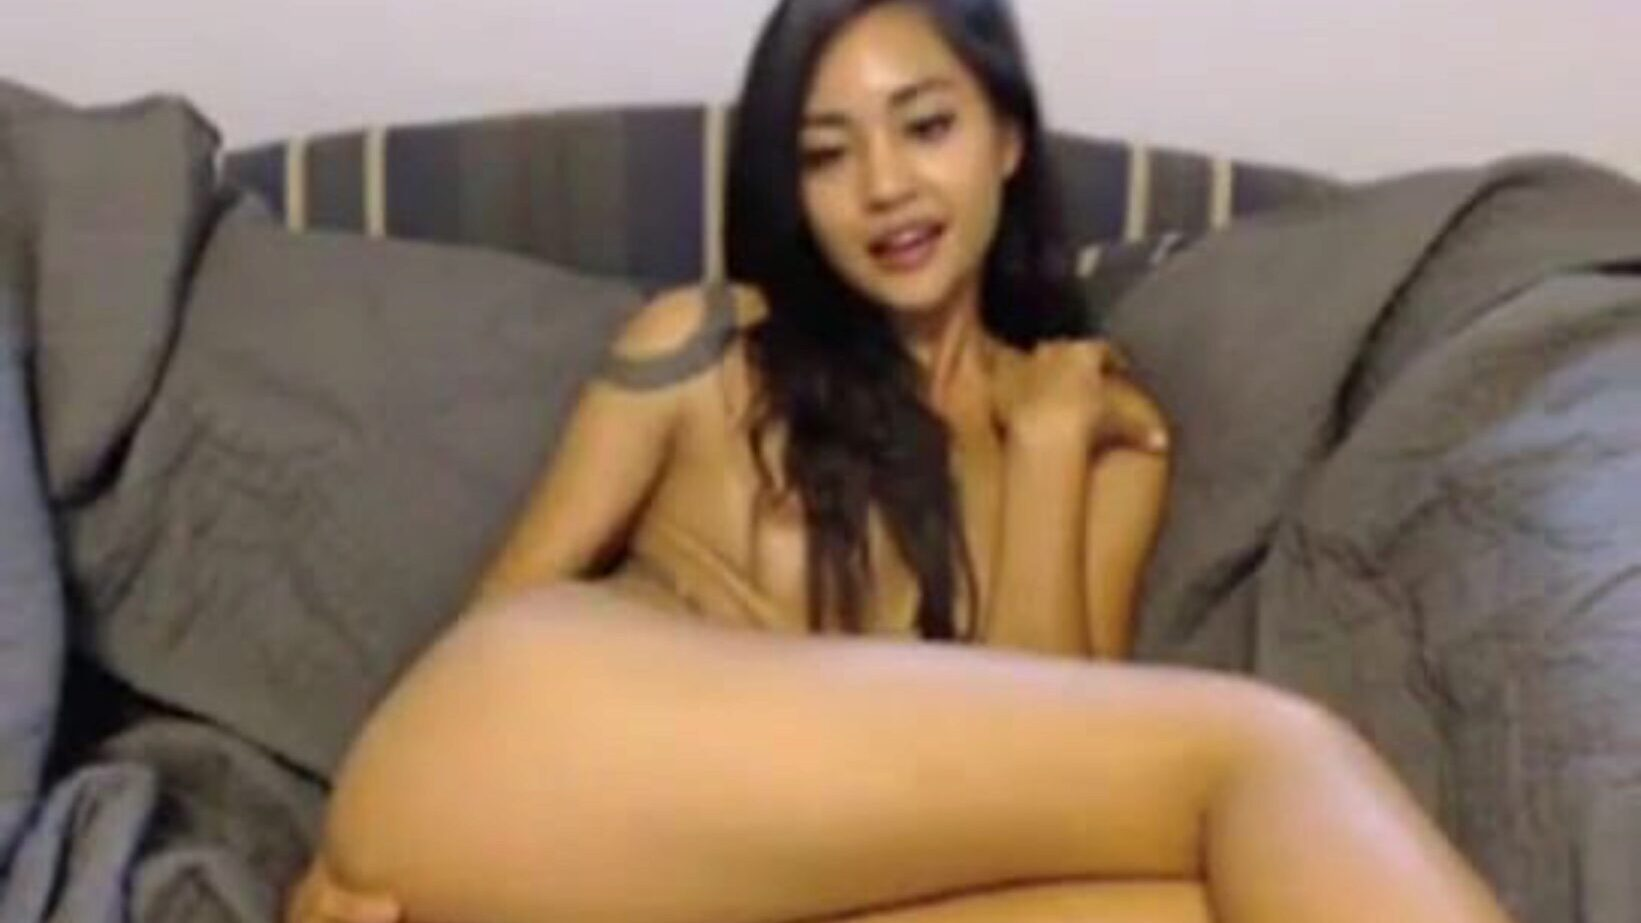 Naughty Asian Teen With A Dildo